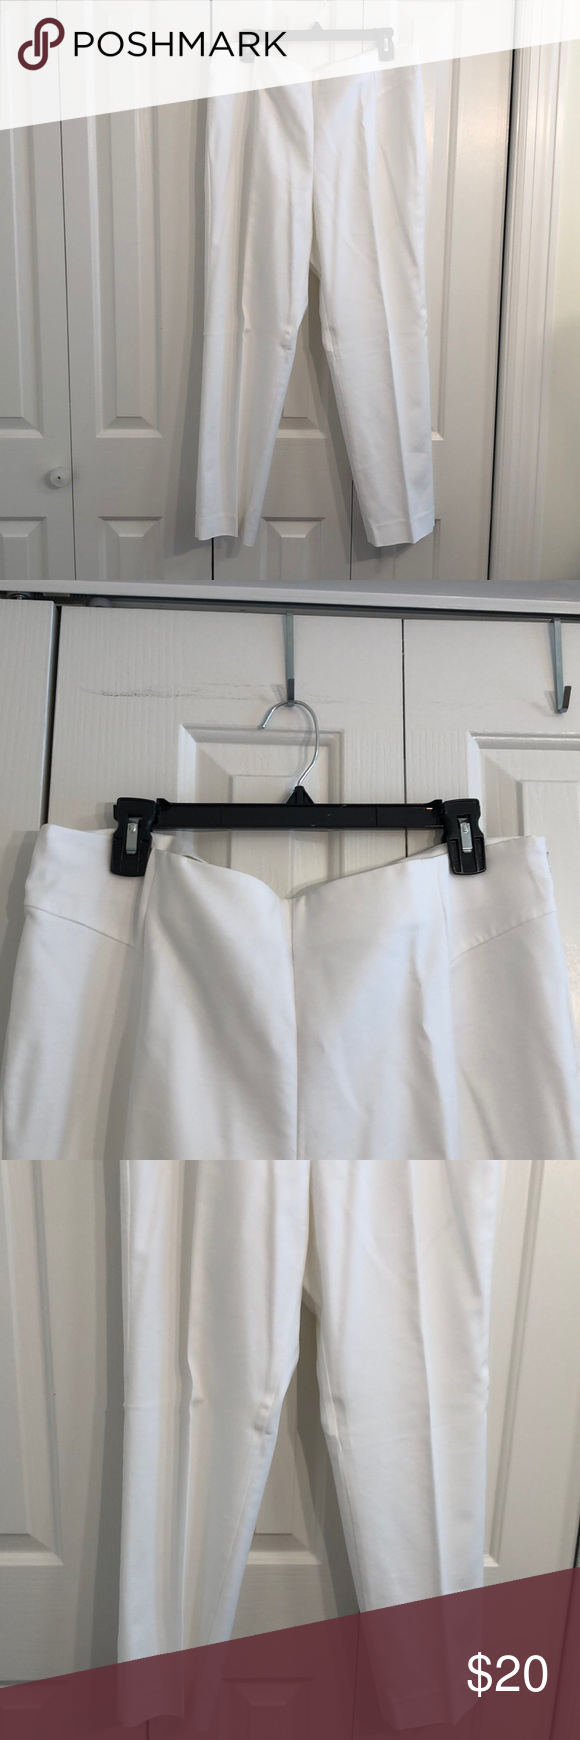 600 west white slacks size 16 very clean 600 west white slacks size 16 very clean, recently dry cleaned. Only worn a few times. No stains. Inseam 28 600 West Pants Ankle & Cropped #whiteslacks 600 west white slacks size 16 very clean 600 west white slacks size 16 very clean, recently dry cleaned. Only worn a few times. No stains. Inseam 28 600 West Pants Ankle & Cropped #whiteslacks 600 west white slacks size 16 very clean 600 west white slacks size 16 very clean, recently dry cleaned. Only worn #whiteslacks